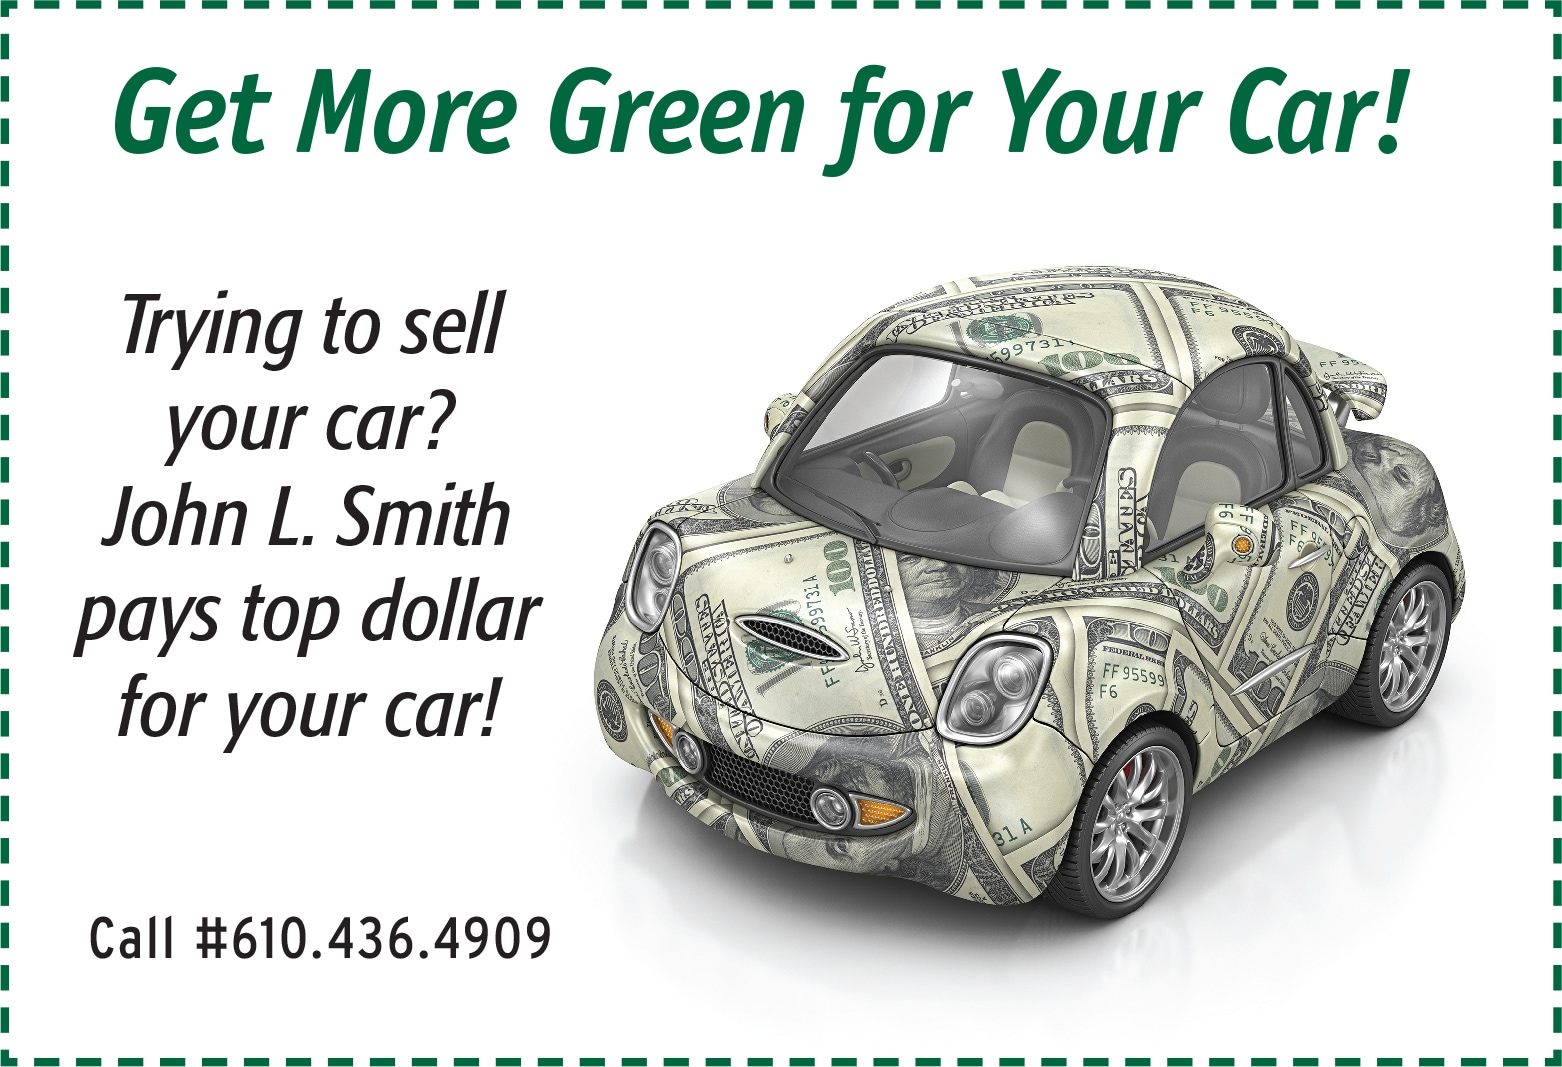 used car dealership west chester pa john l smith used cars. Black Bedroom Furniture Sets. Home Design Ideas